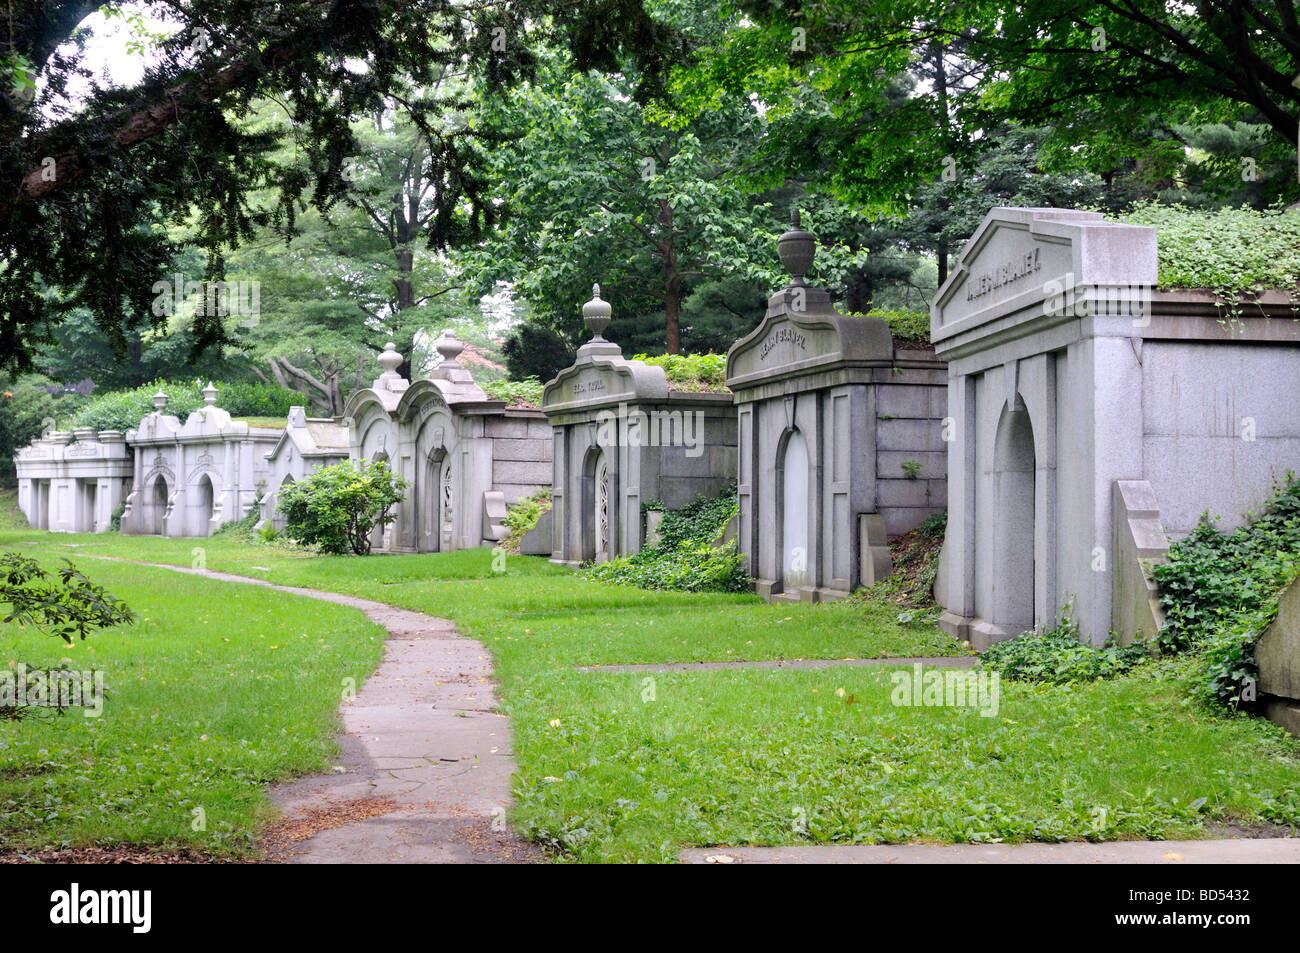 Row of old granite stone mausoleums in cemetery - Stock Image